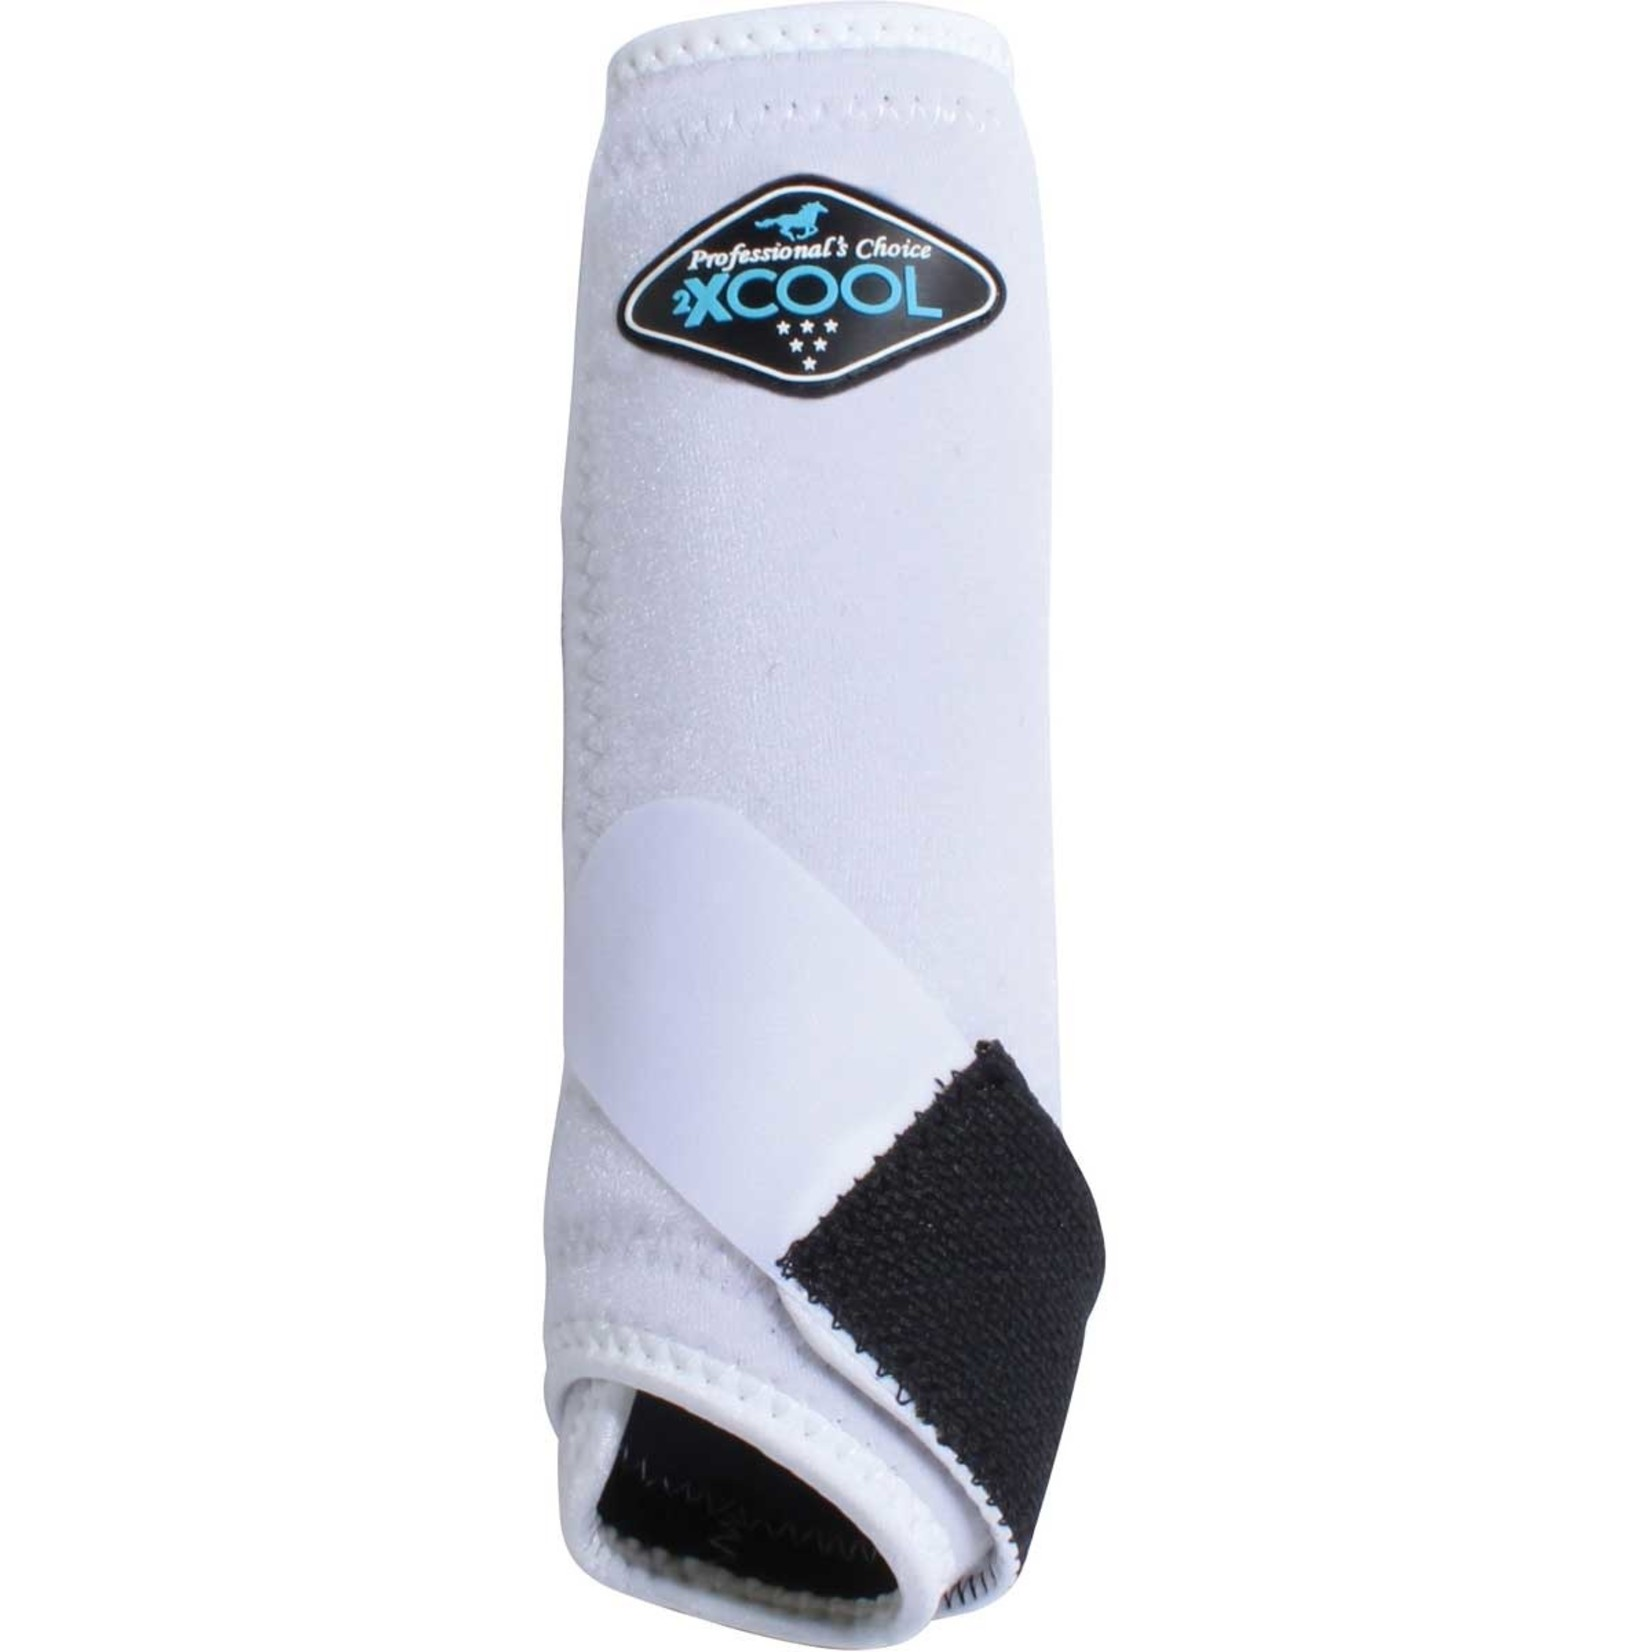 Professional's Choice 2XCool SMB Front Med/Wht